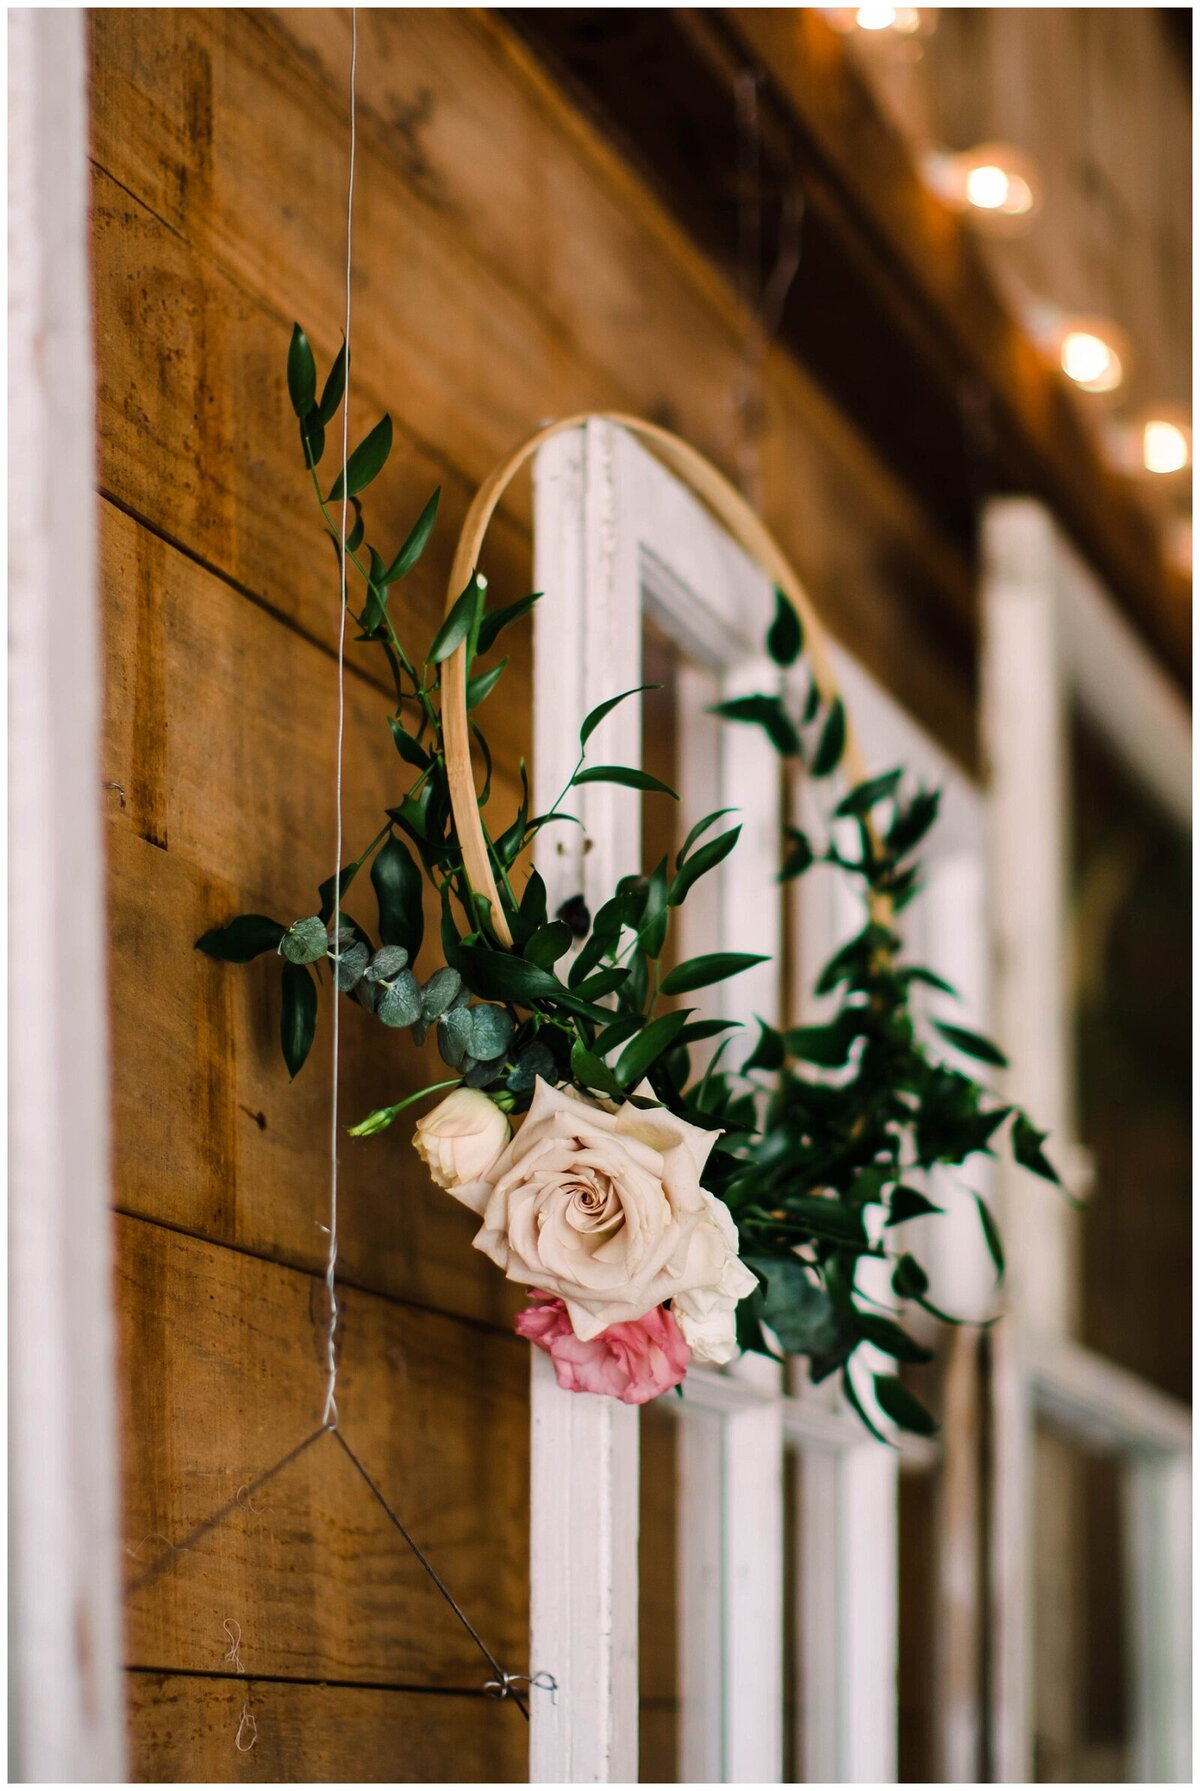 Houston Wedding Planner for Vintage Blush Floral Hoop Inspired Wedding at Emery's Buffalo Creek- J. Richter Events_0003